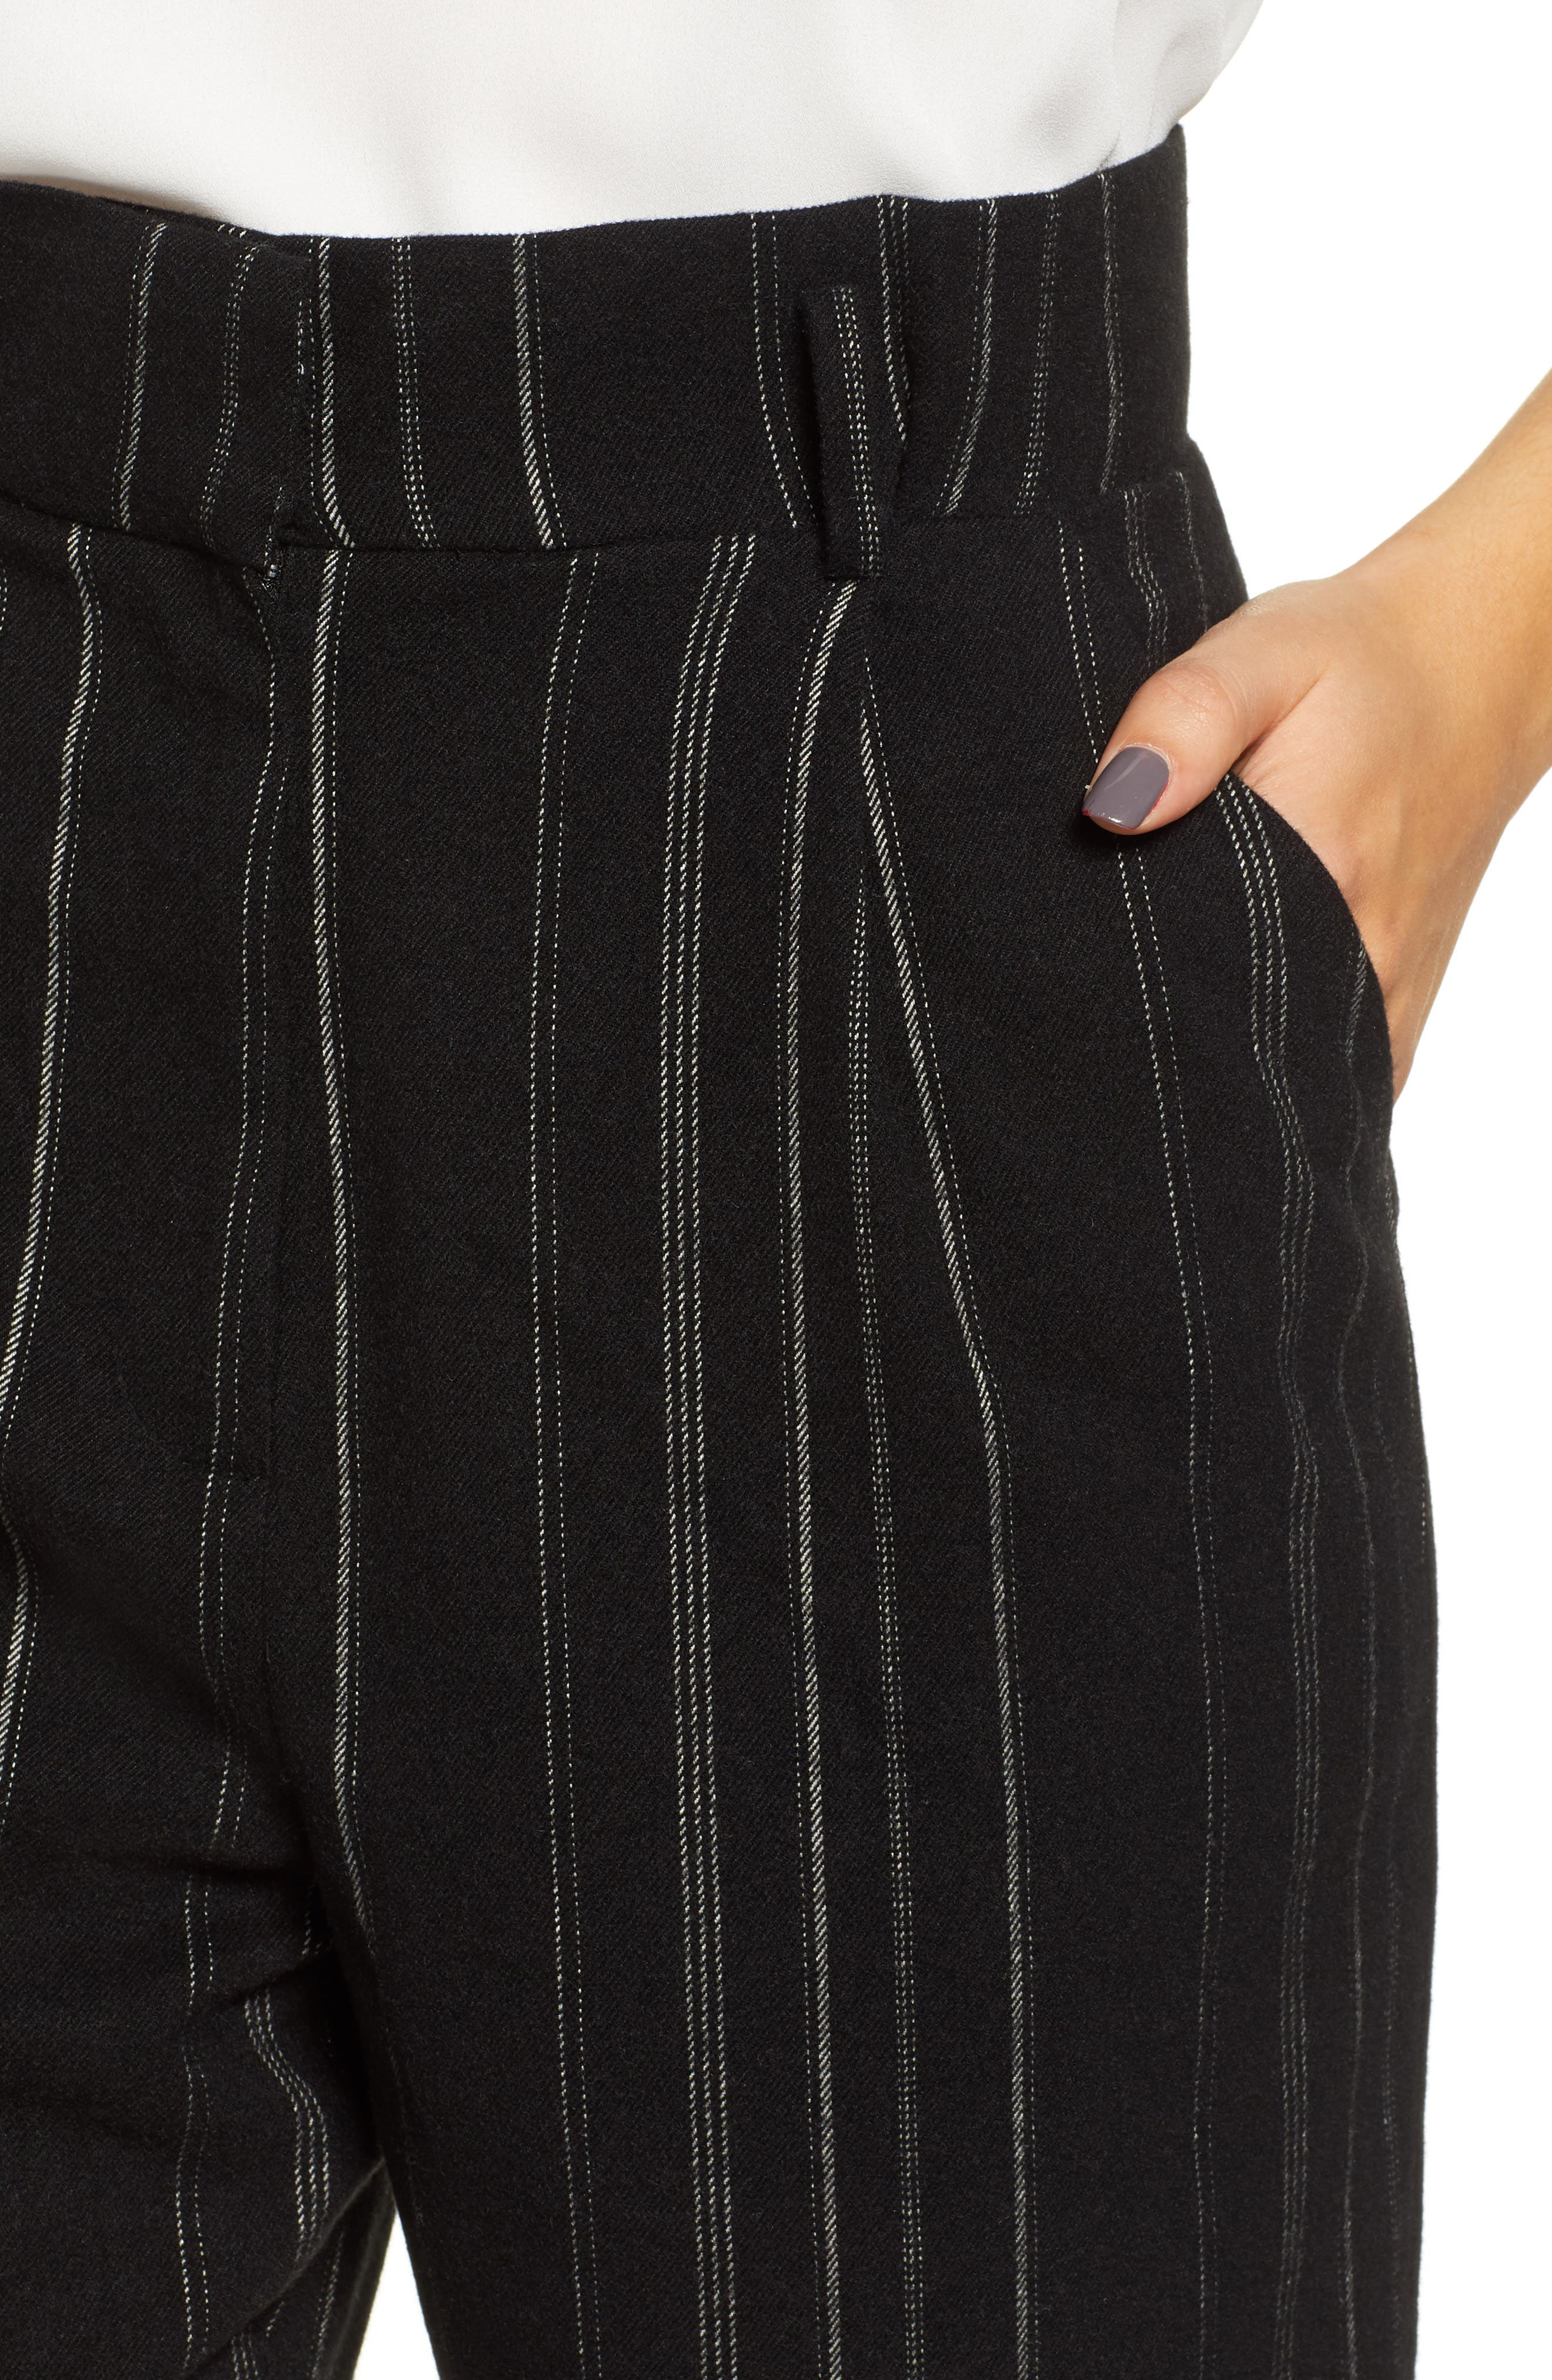 High Rise Belted Paperbag Pants,                             Alternate thumbnail 6, color,                             BLACK MIXED STRIPE